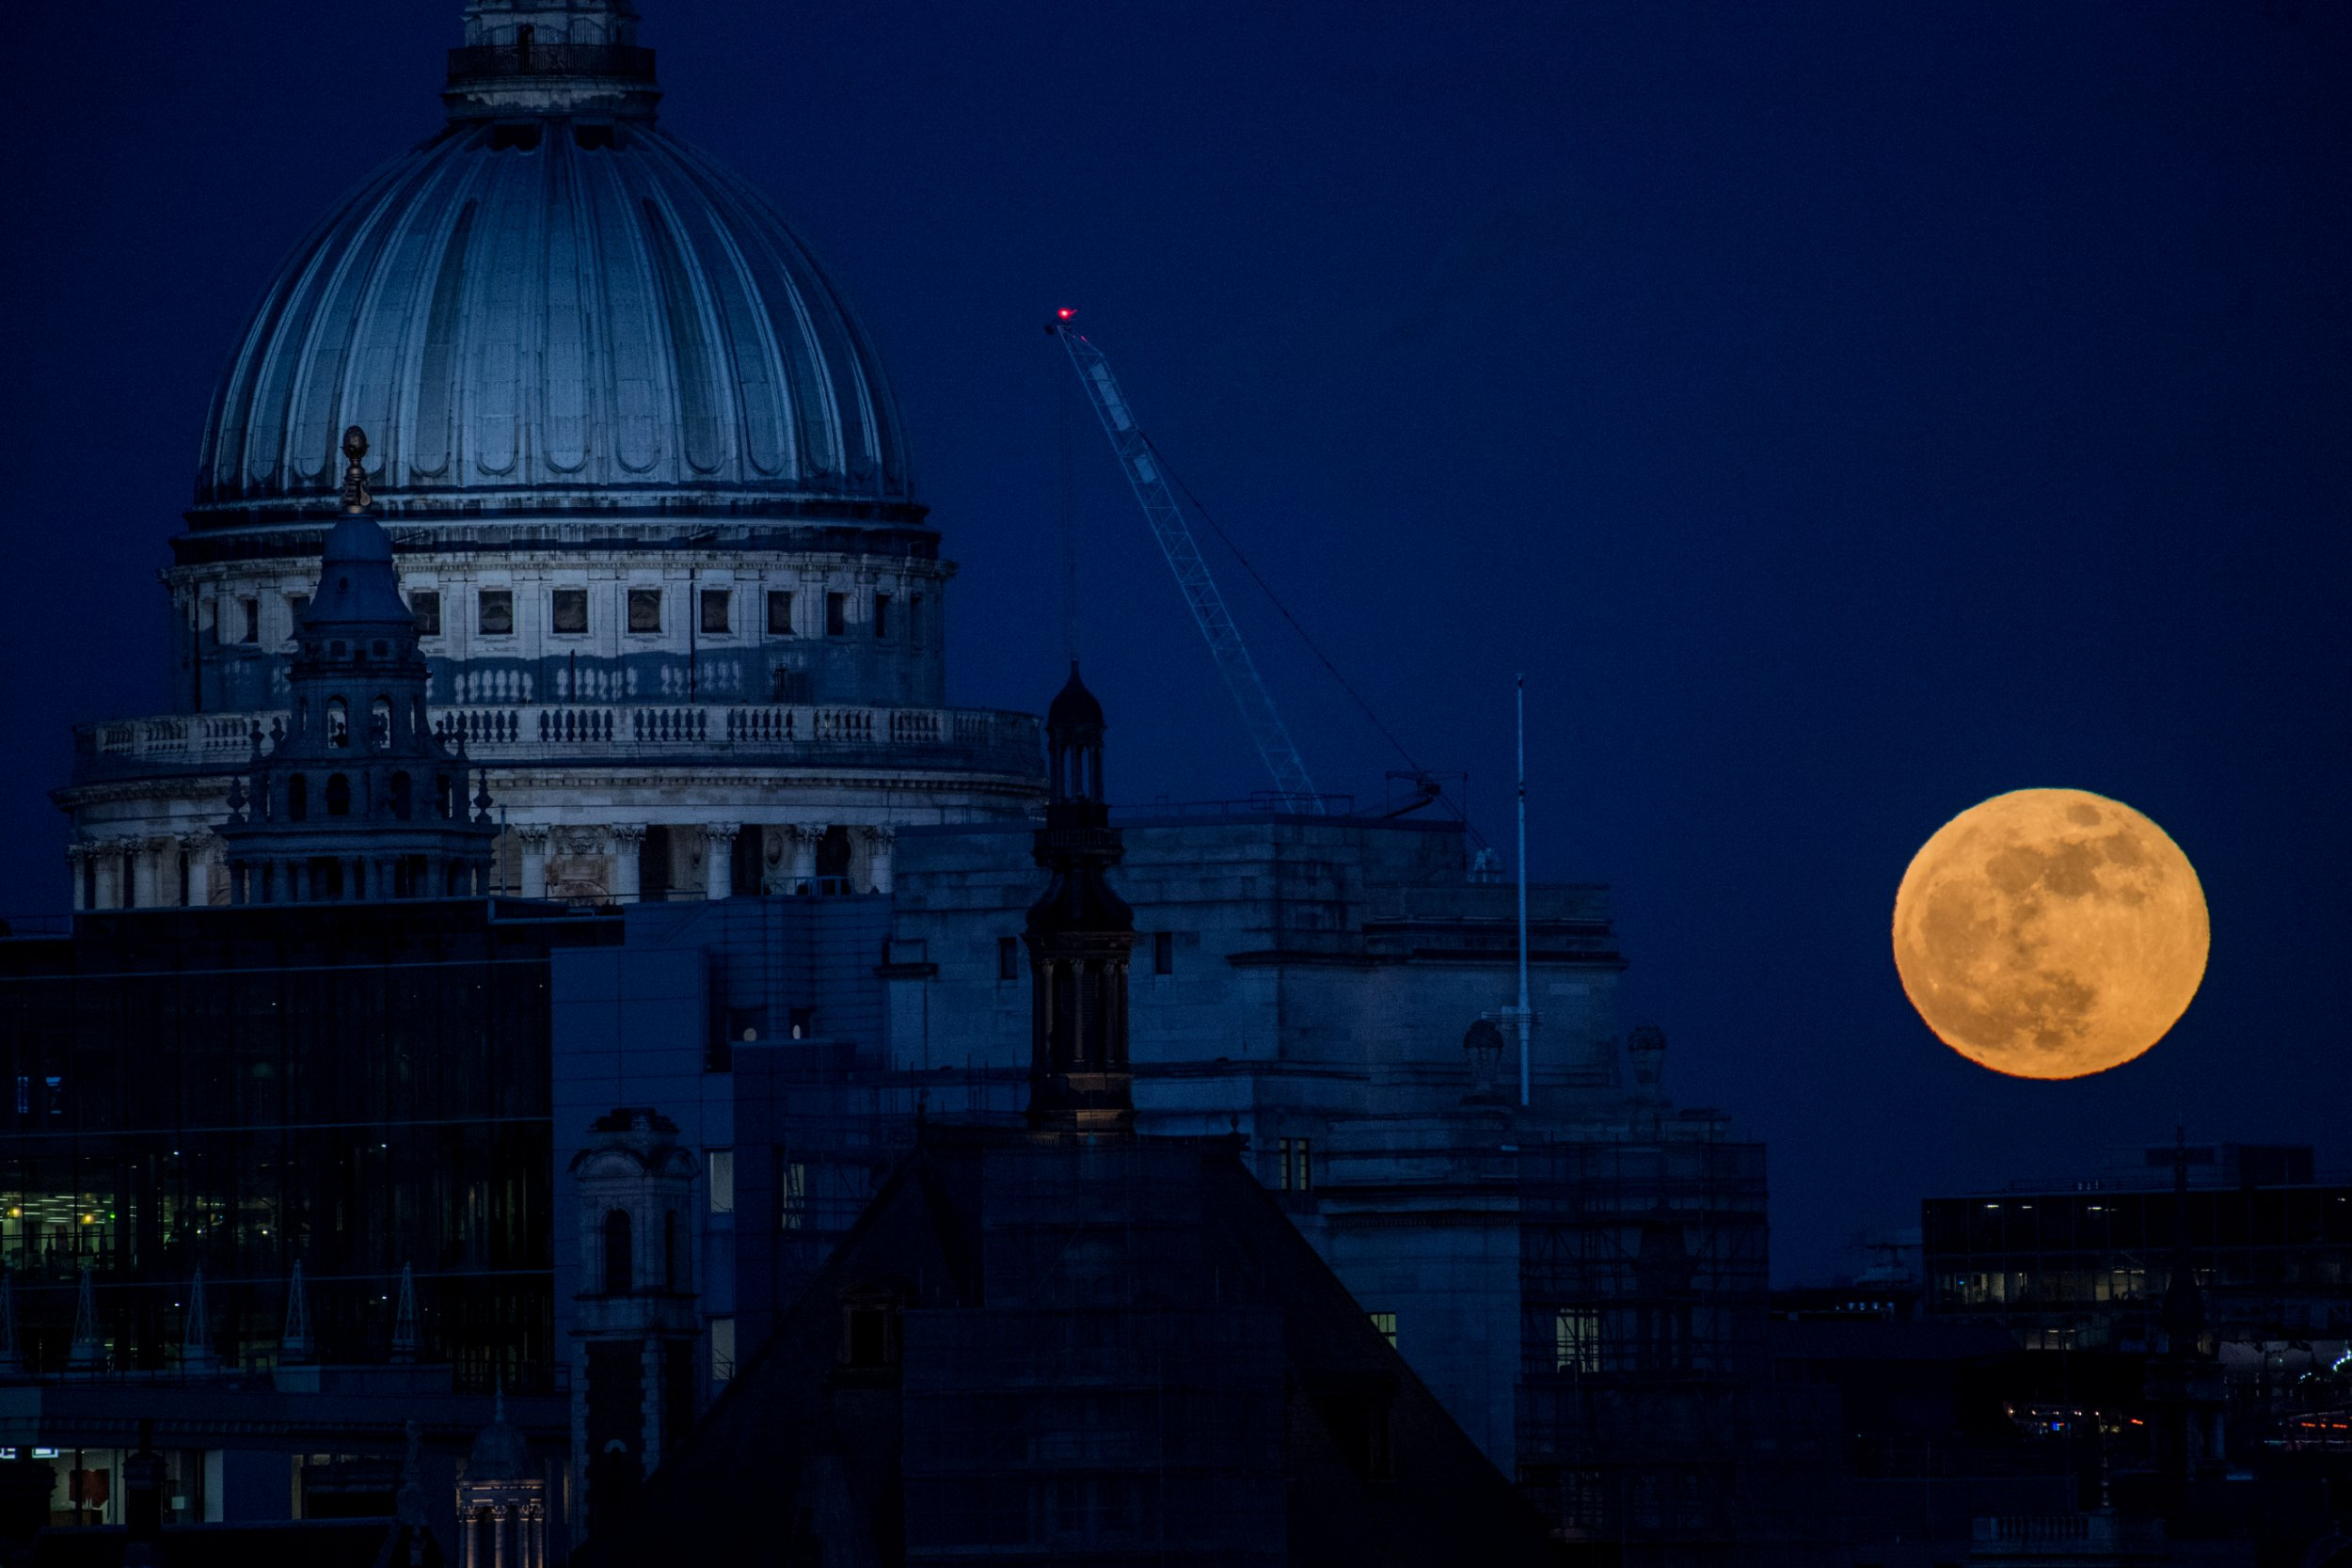 LONDON, UNITED KINGDOM - JANUARY 31: A supermoon rises behind St. Paul's Cathedral on January 31, 2018 in London, United Kingdom. The super blue blood moon is a rare combination of a supermoon, a blood moon and a blue moon all simultaneously occuring. (Photo by Chris J Ratcliffe/Getty Images)